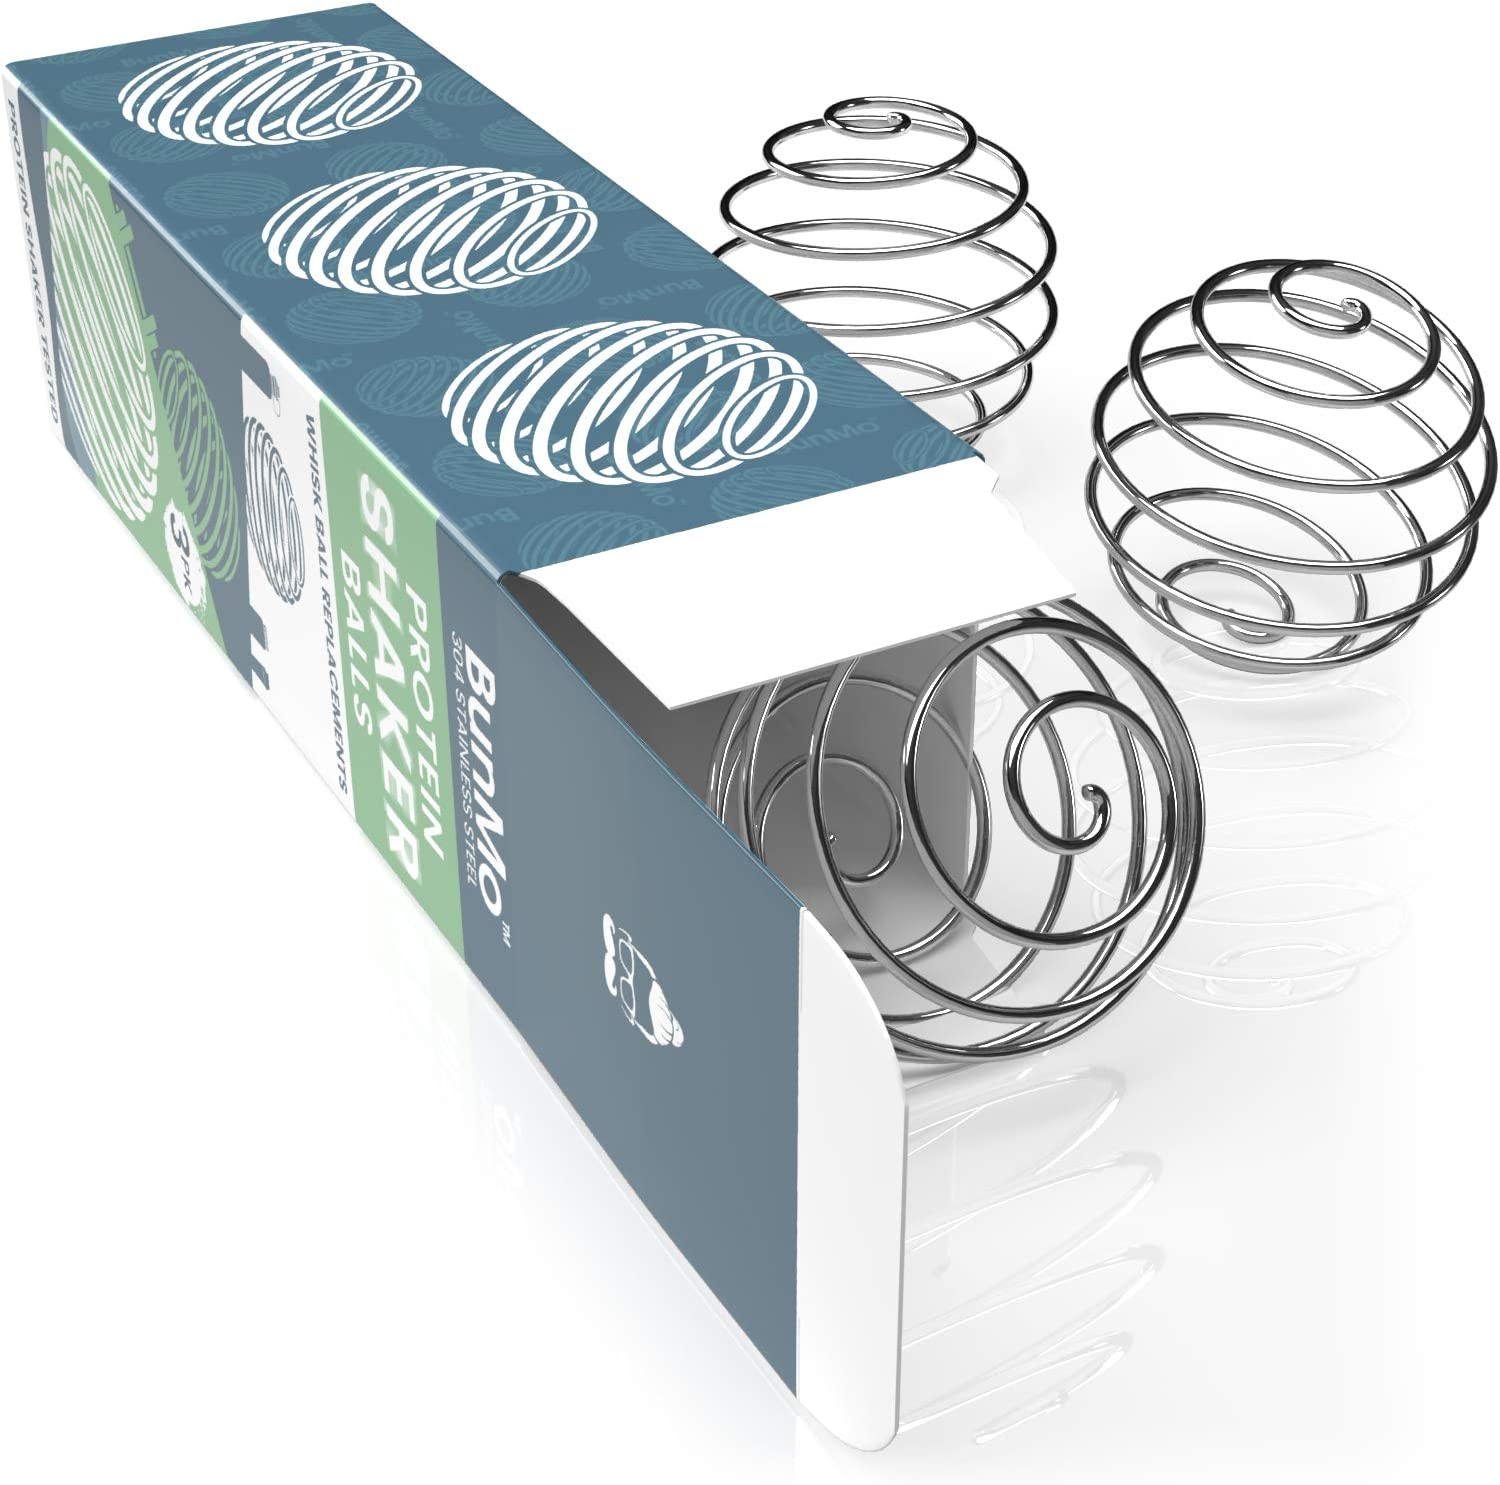 BUNMO Whisk Ball Shaker Balls - For Protein Shakes - 3 Pack